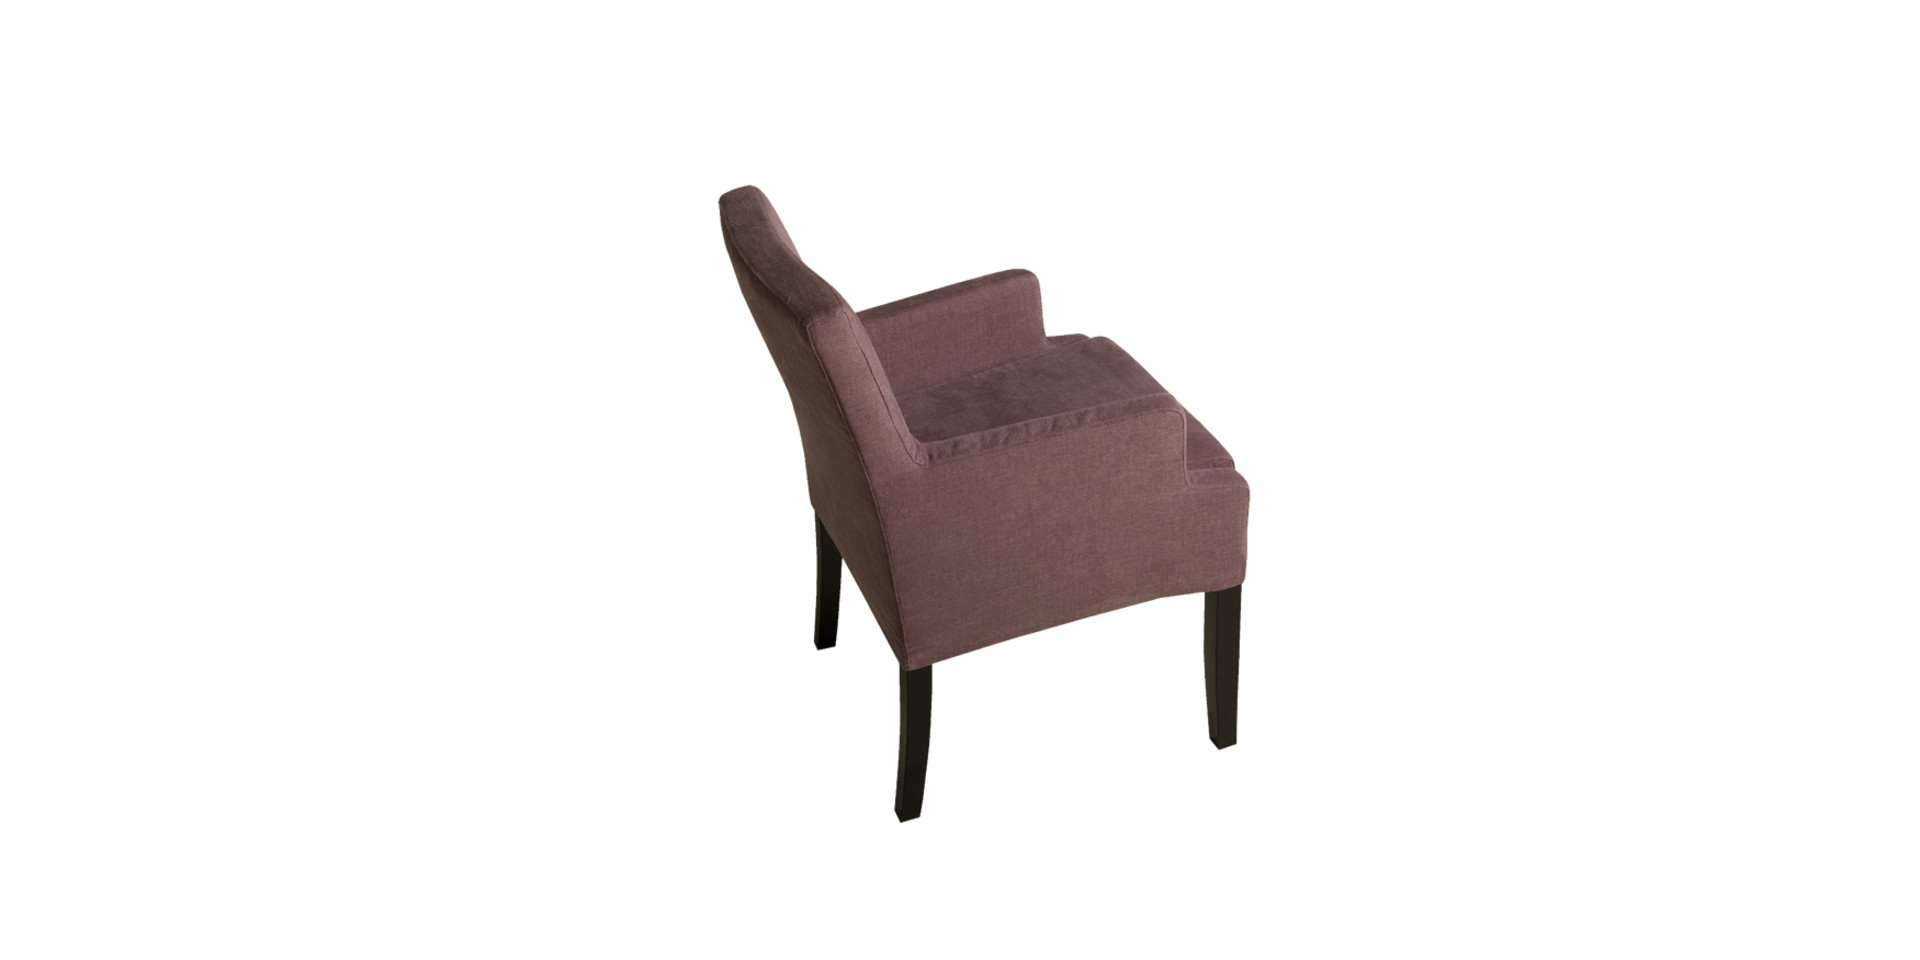 sits-merlin-fauteuil-chair_brest116_plum_6